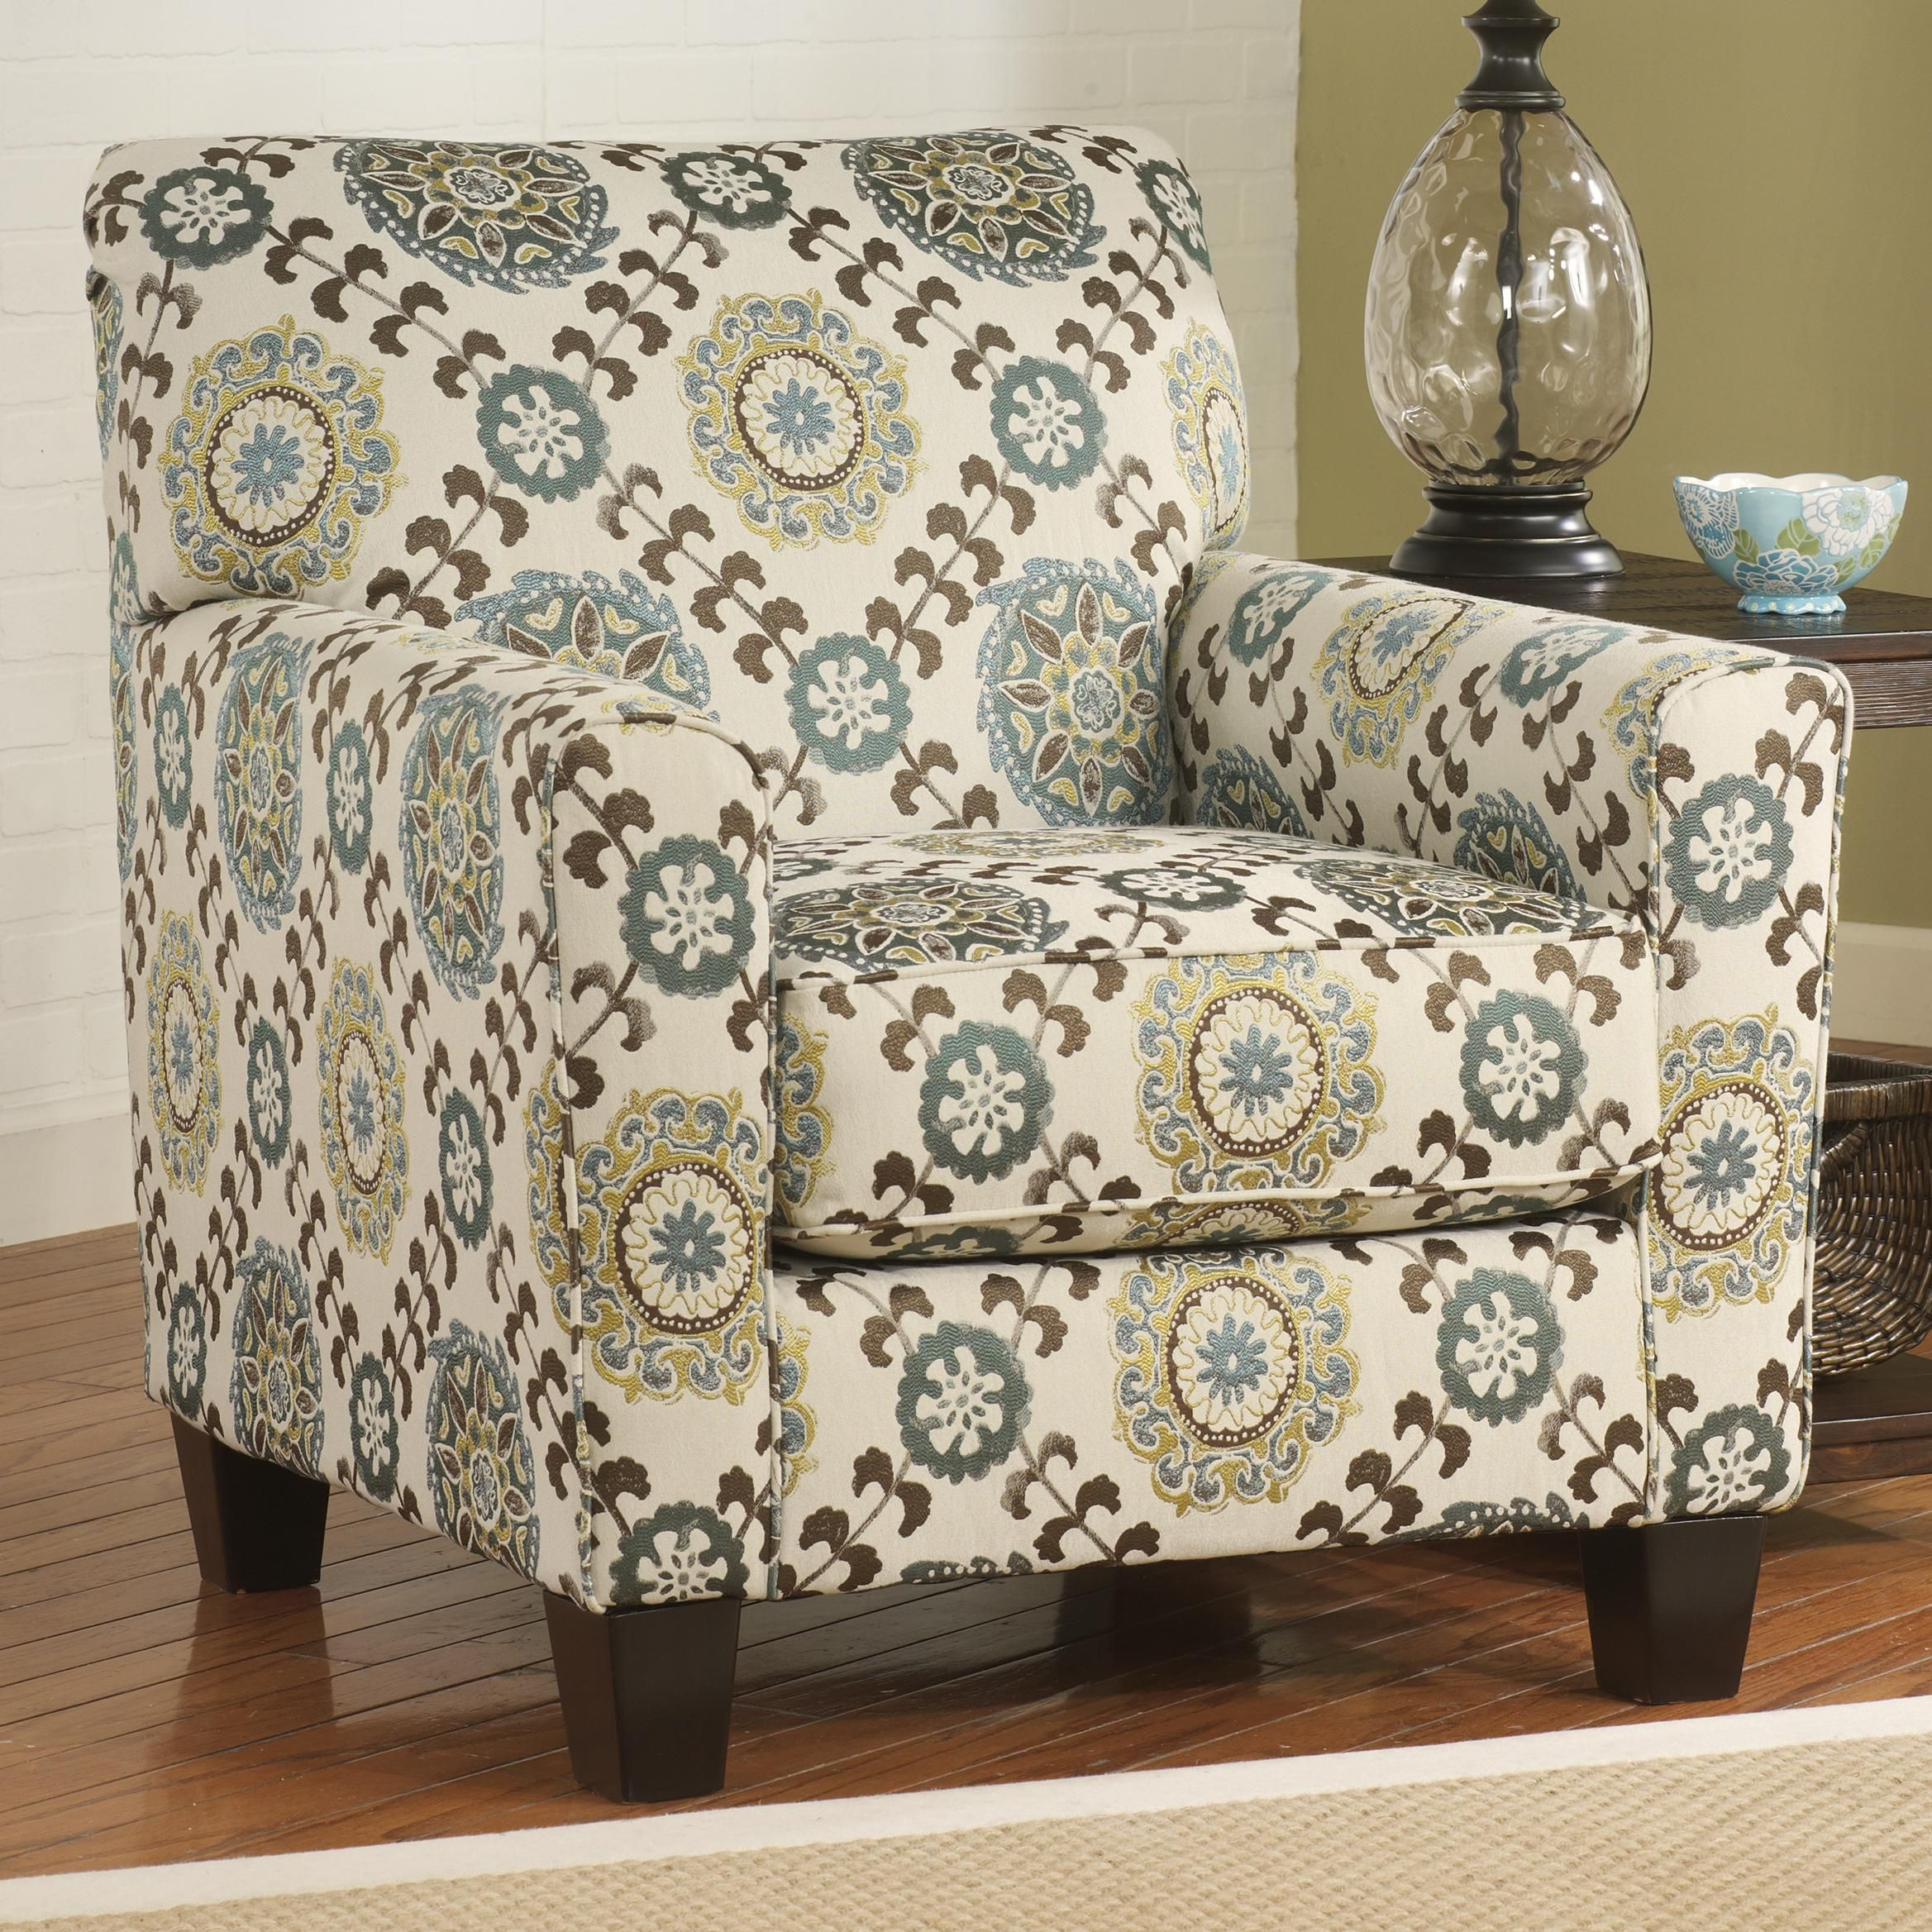 Ashley Furniture Discount Store: Pin By Jessie McCallister On Home Decor